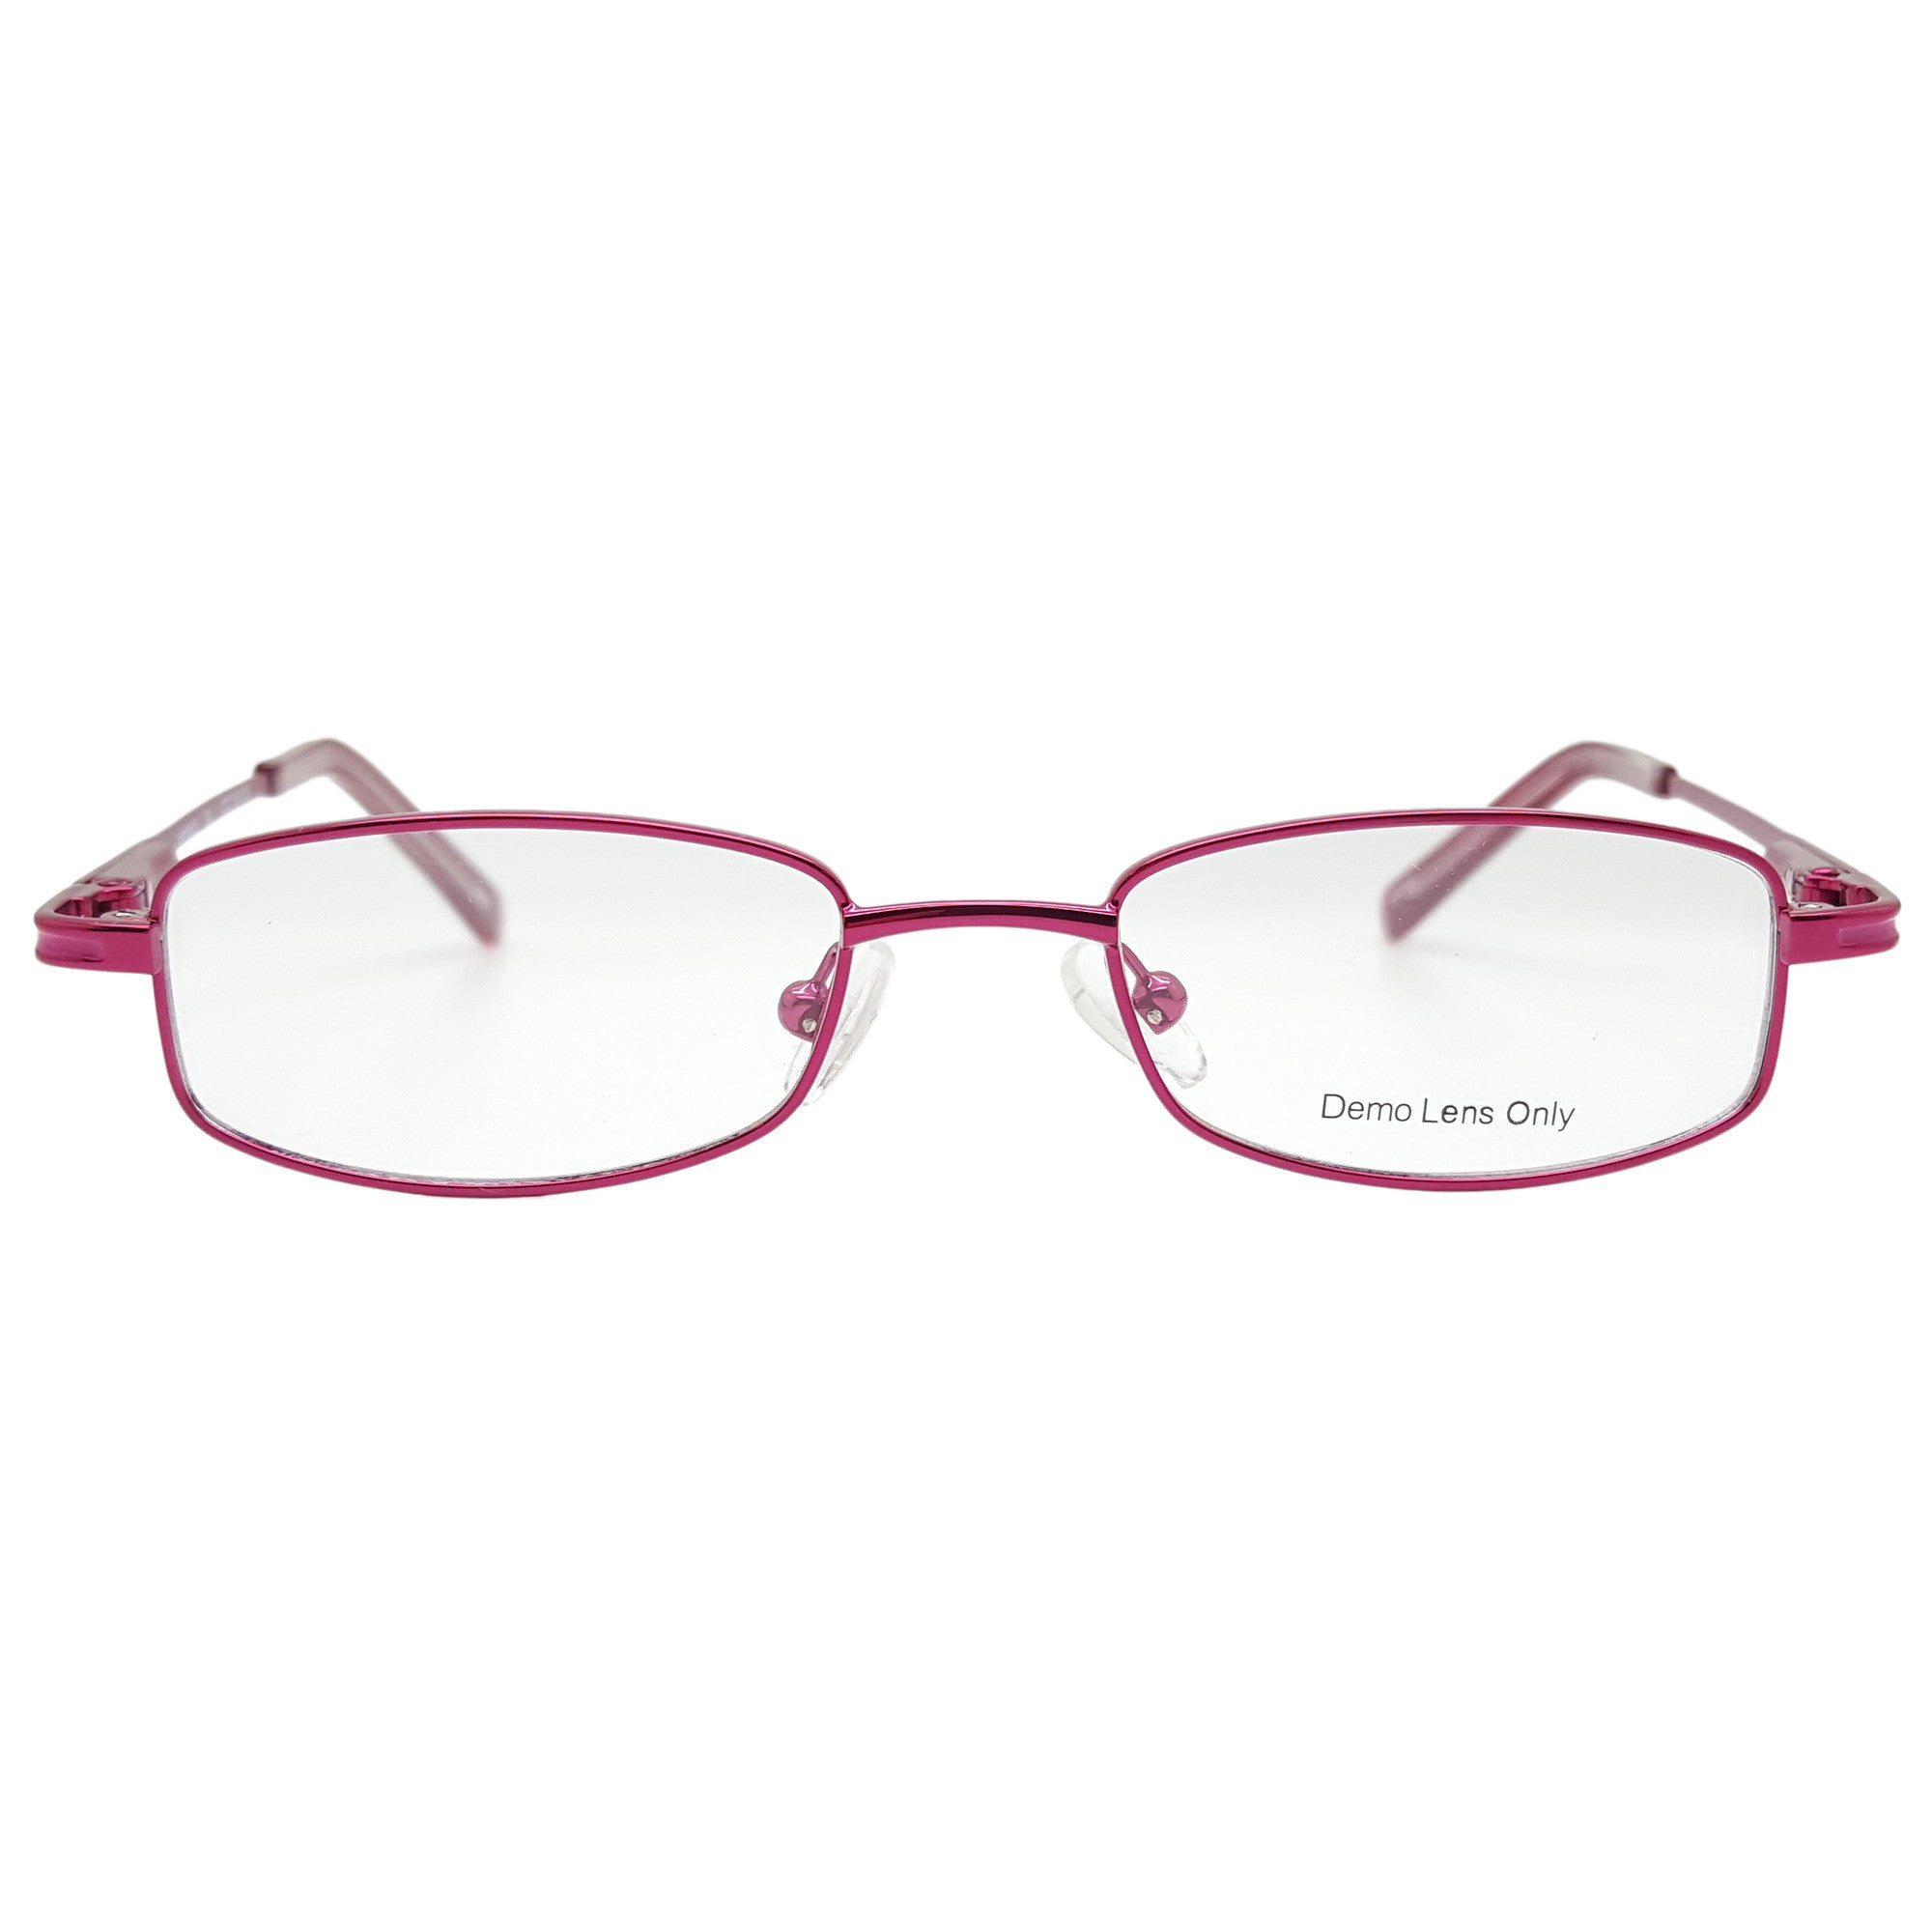 Girls KM0003 Eyeglasses Prescription Frames, 42-16-125 Burgundy ...